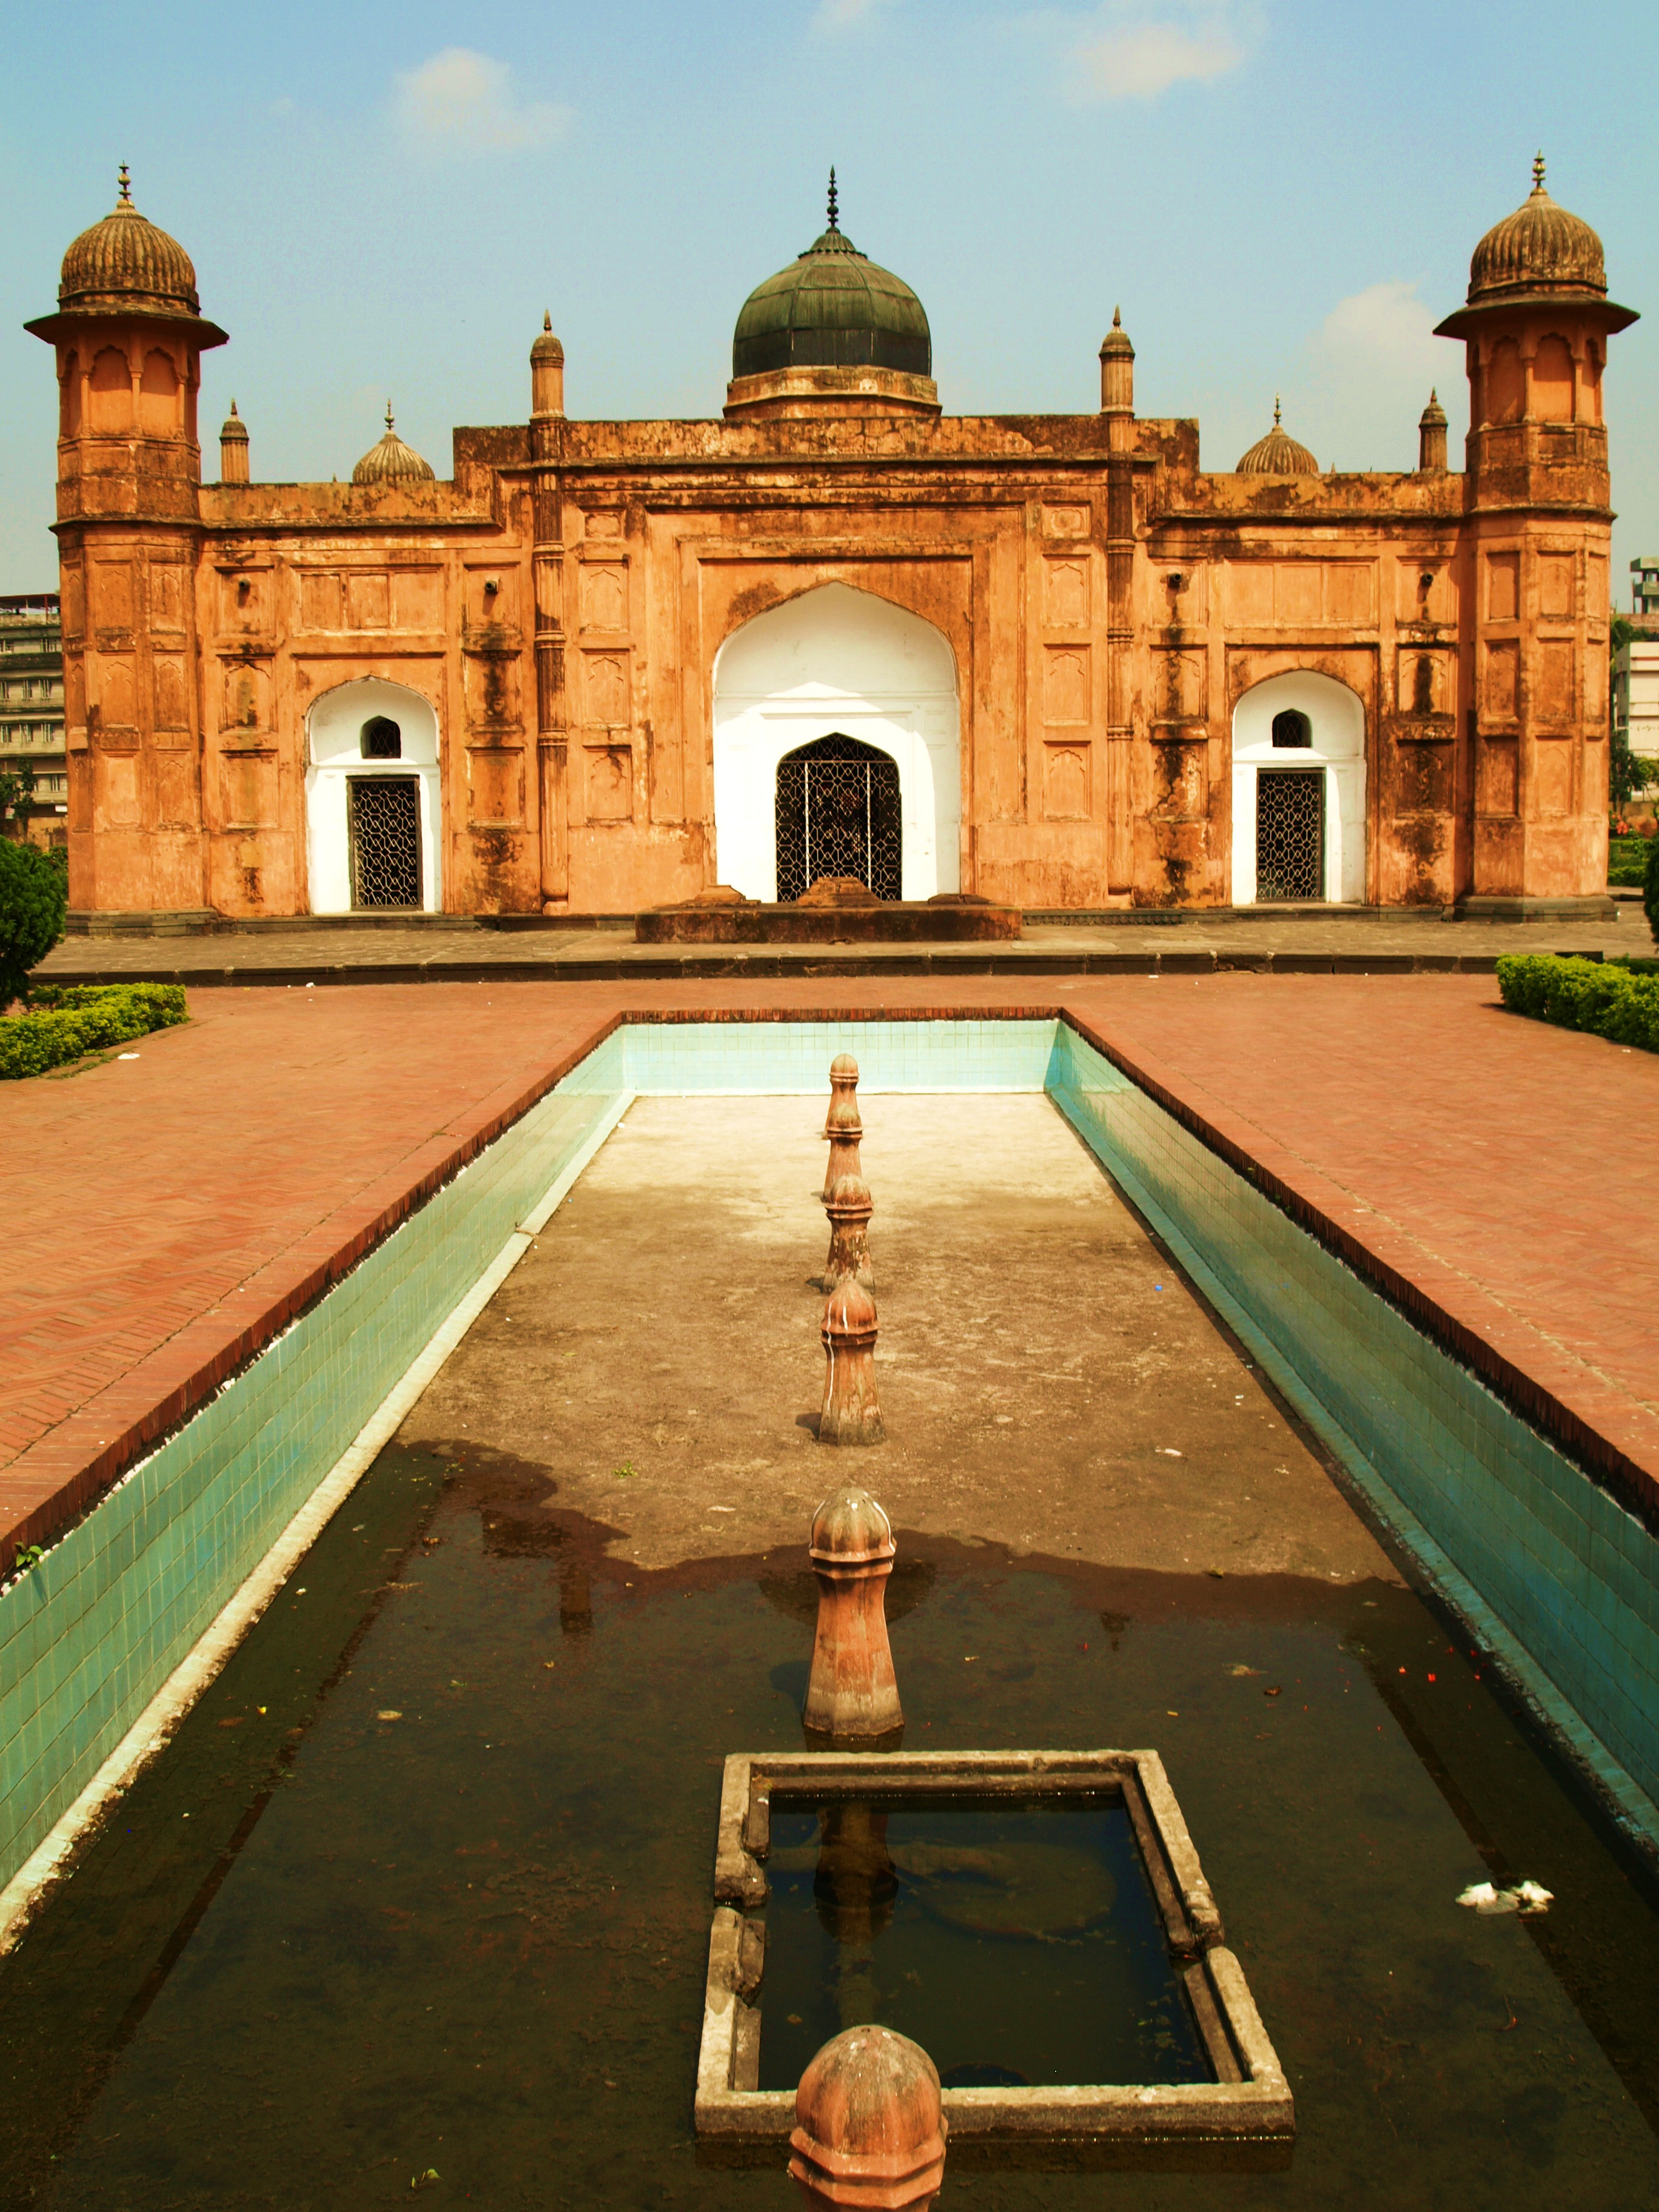 File:Lalbagh Kella (Lalbagh Fort) Dhaka Bangladesh 2011 27.JPG